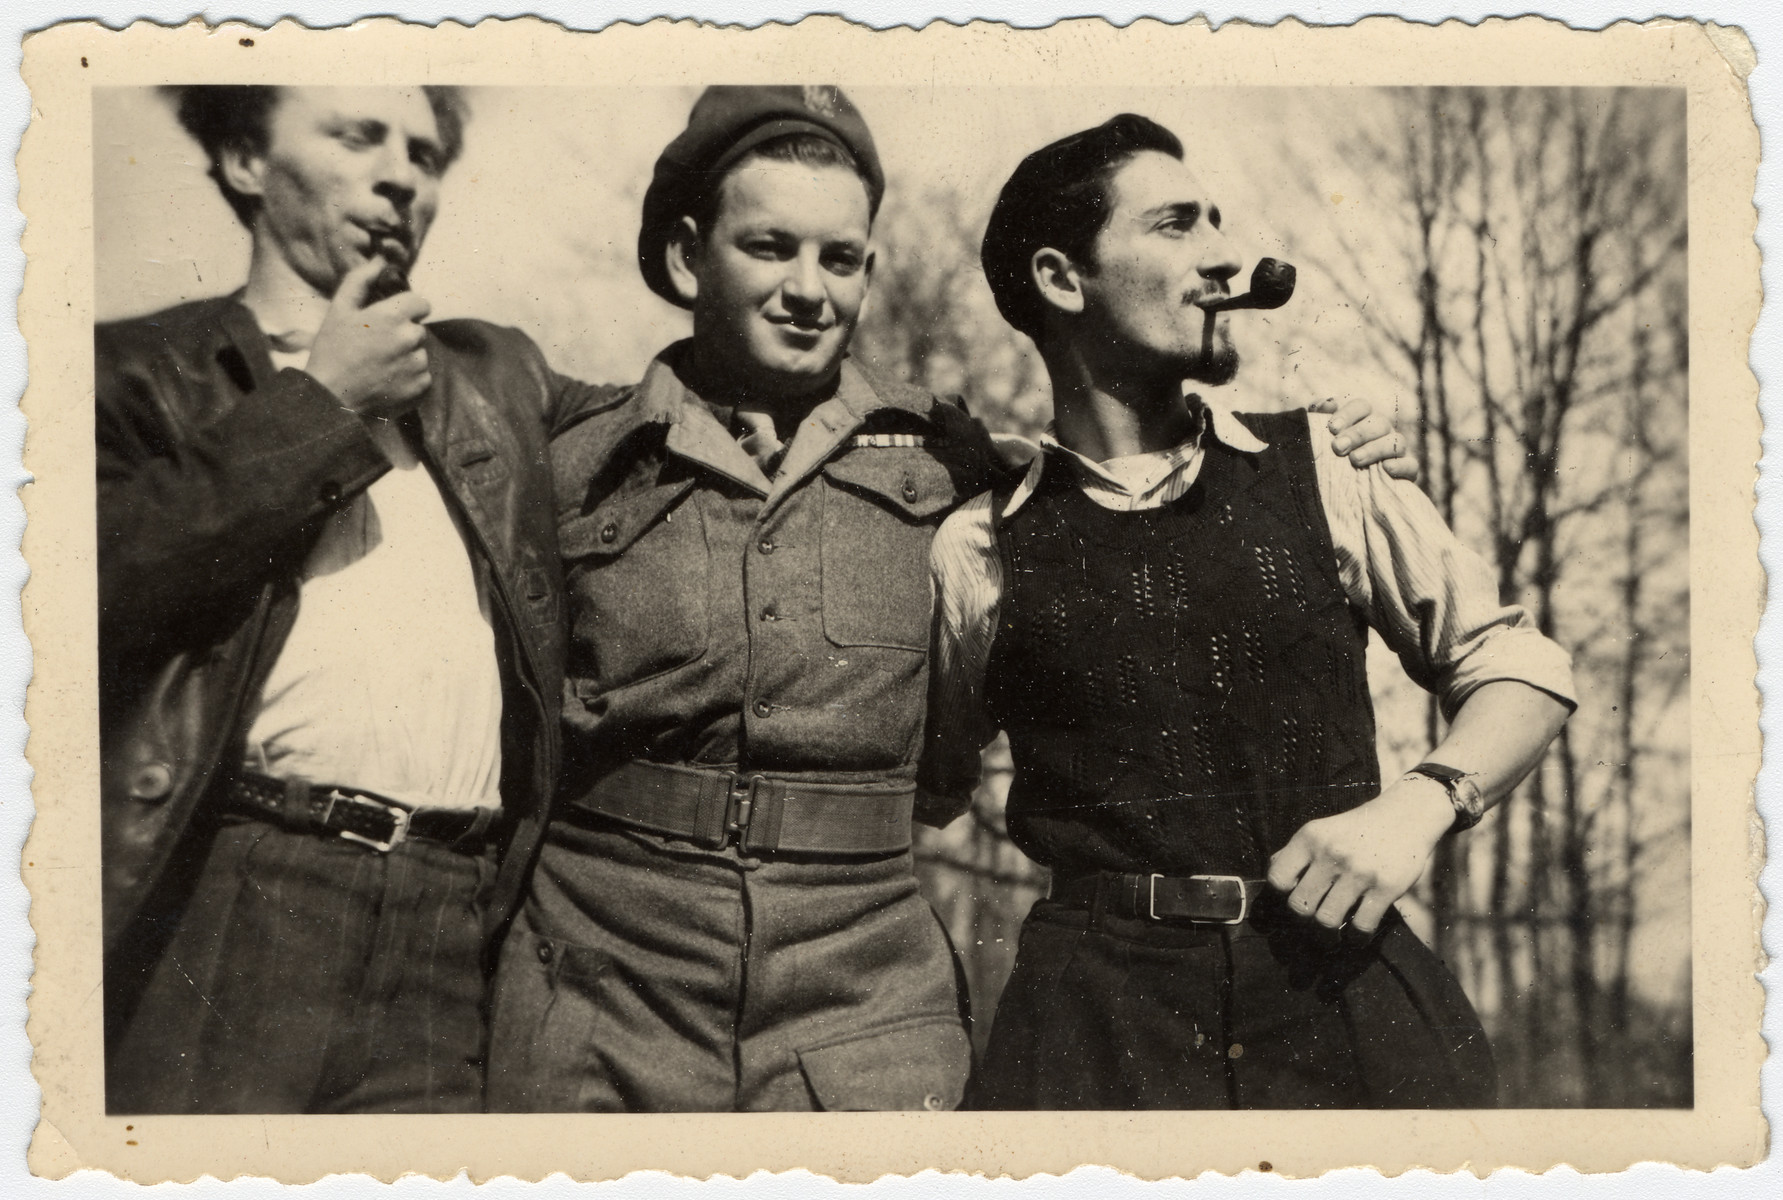 Close-up portrait of three young Israeli men smoking pipes.  Pictured on the right is Jacques Sephiha.  The man in the center is a member of the Jewish Brigade.